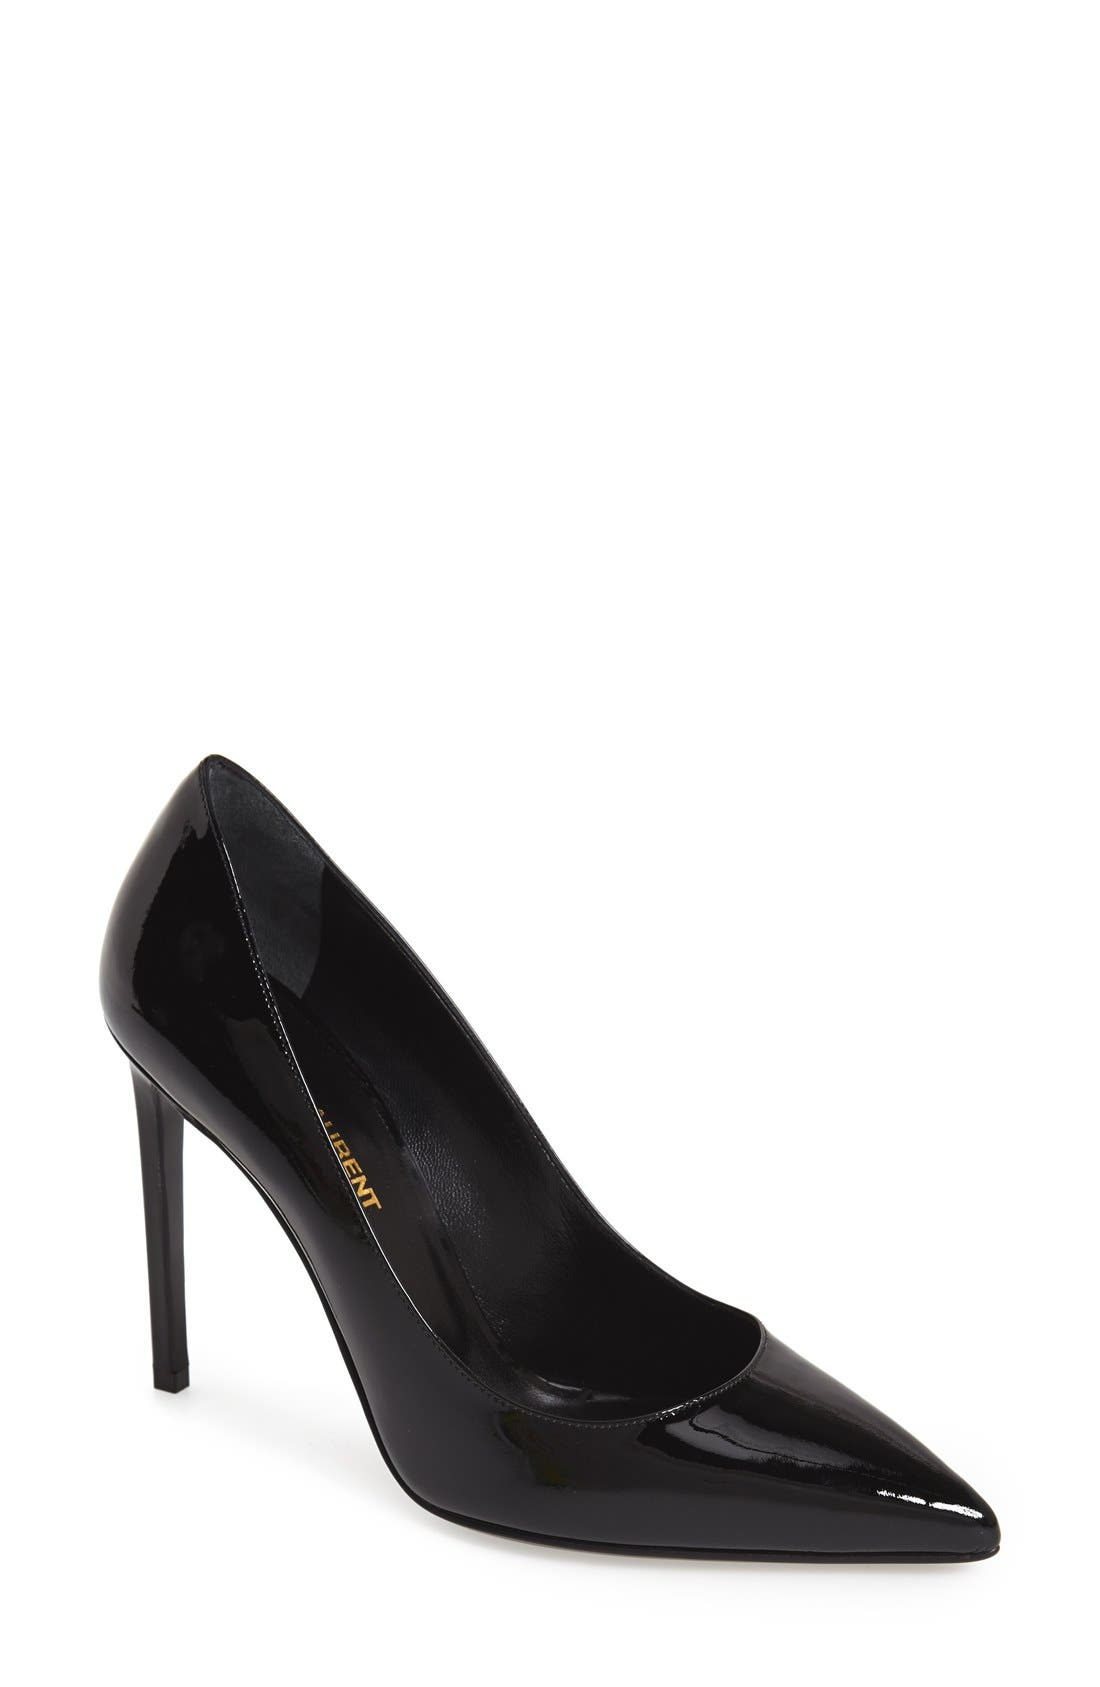 'Paris Skinny' Pointy Toe Pump,                             Main thumbnail 1, color,                             Black